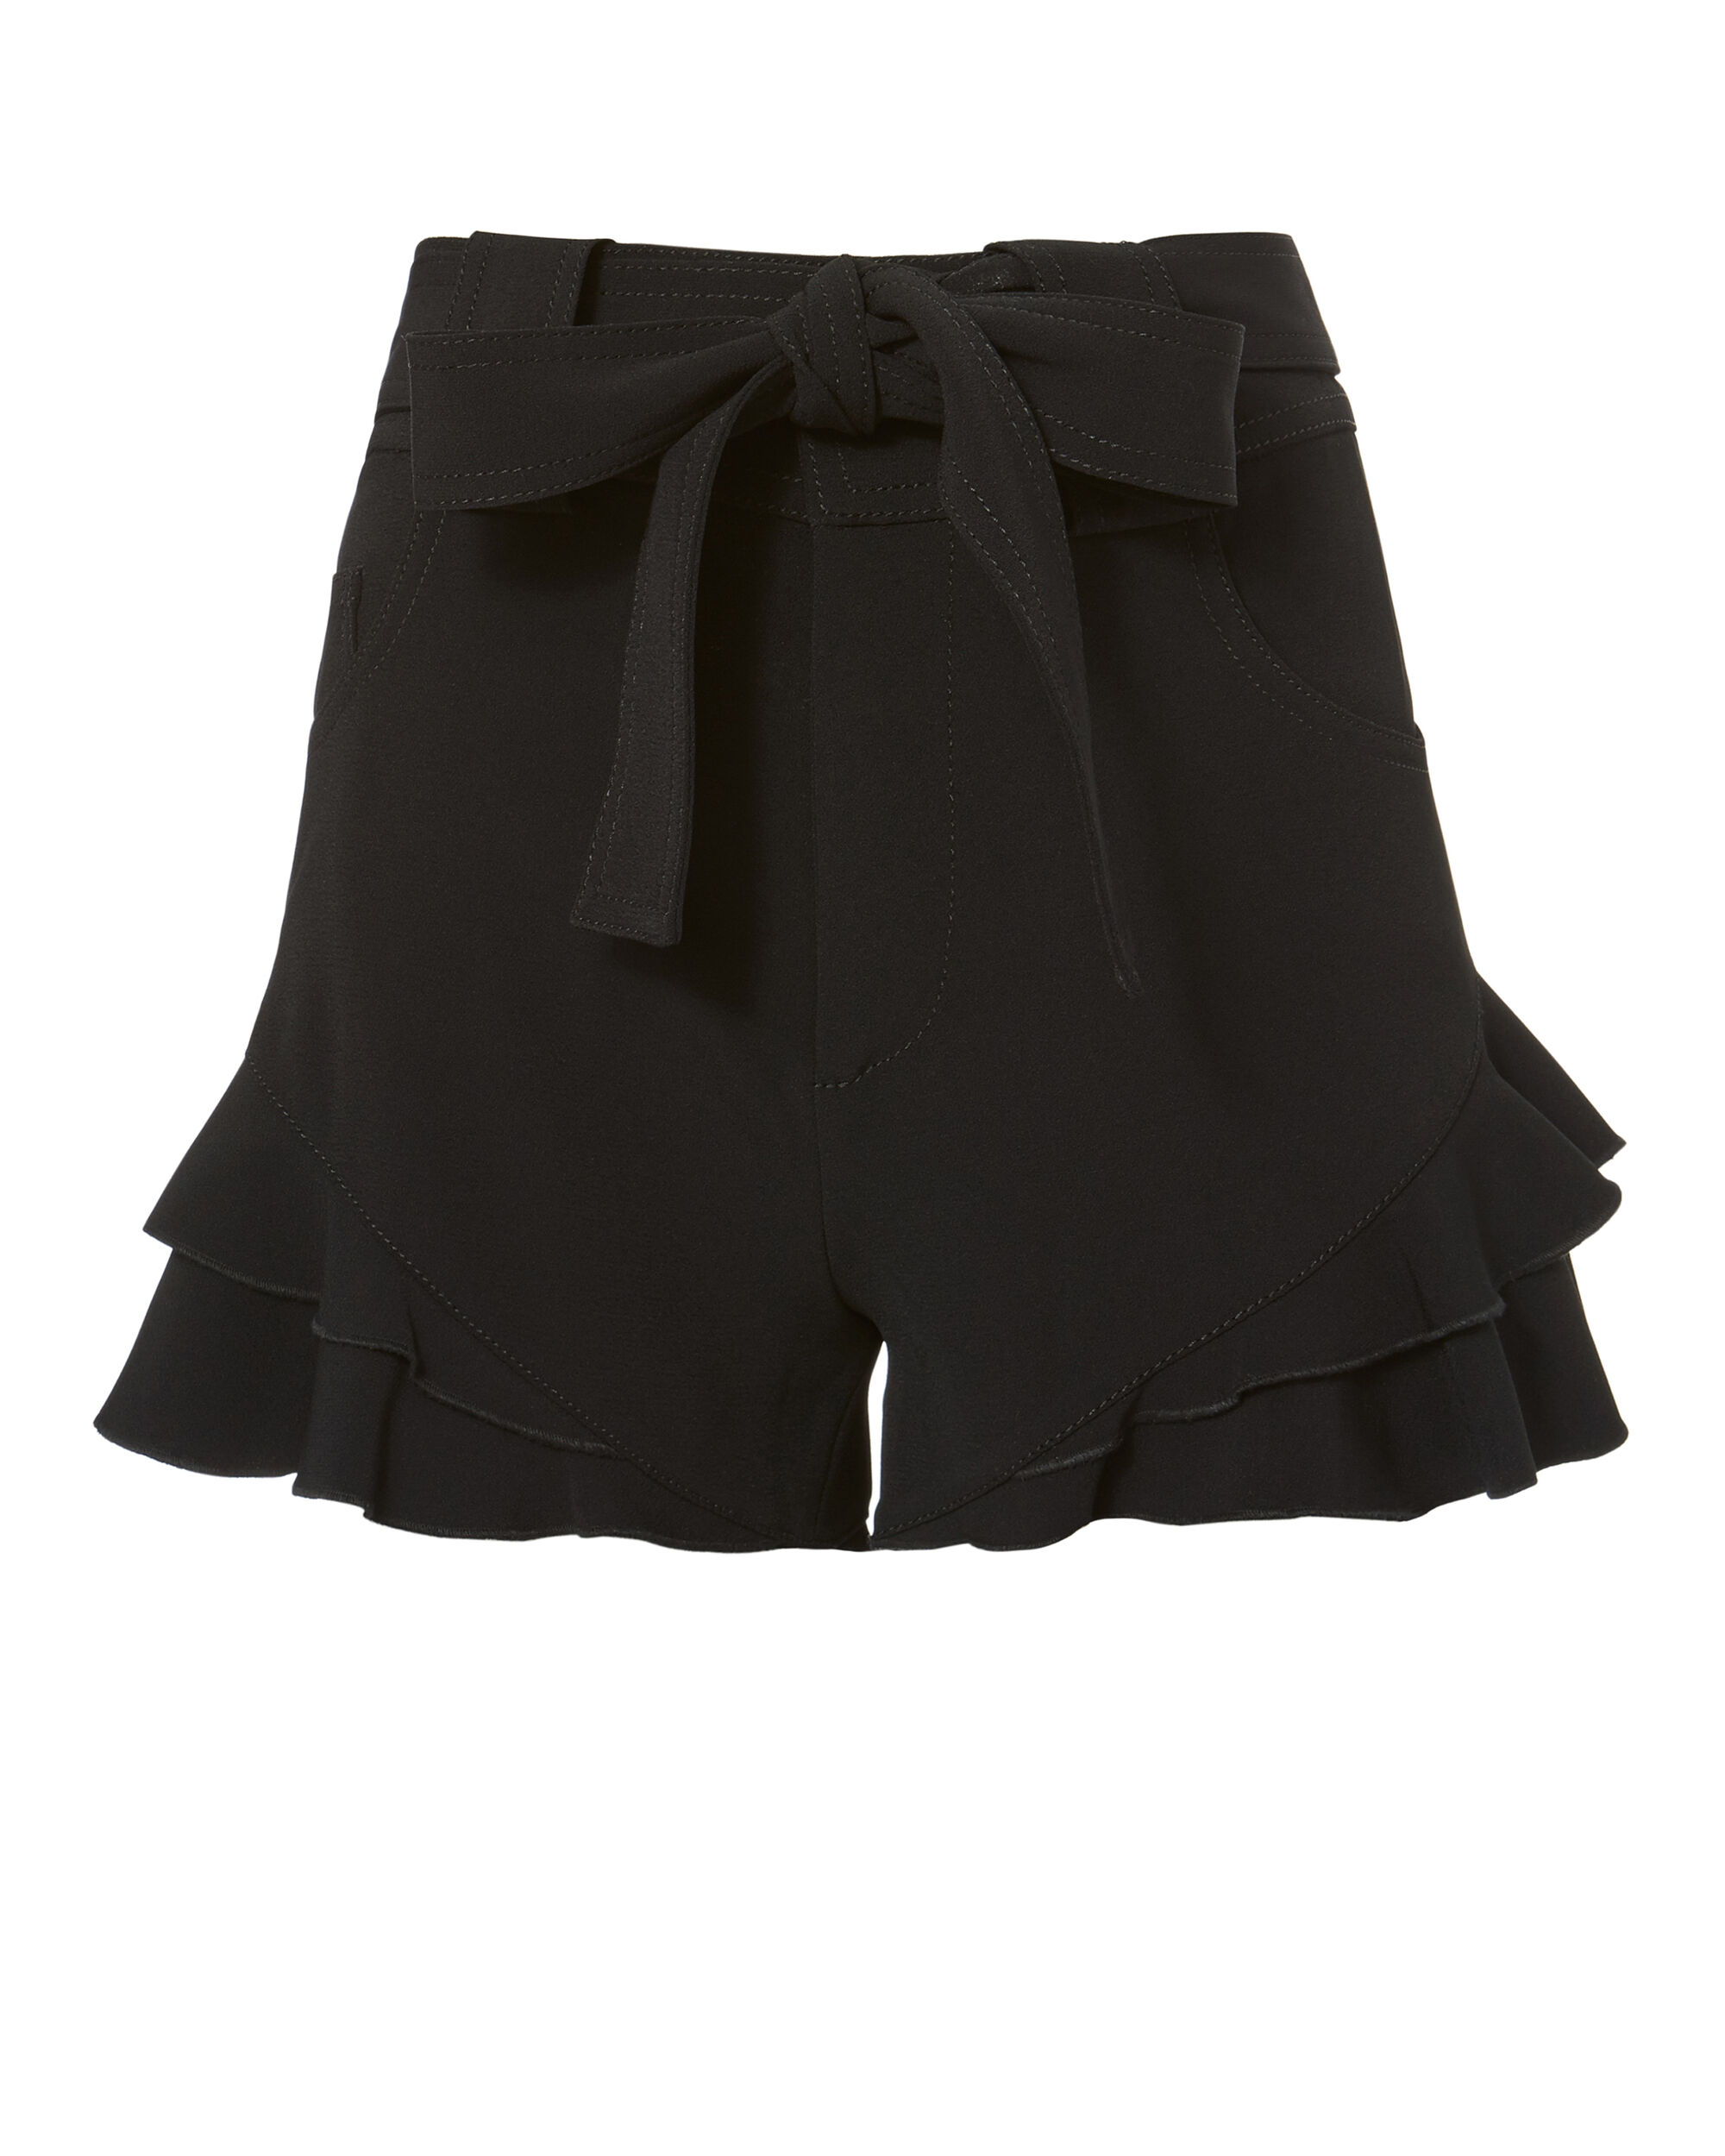 Black Crepe Ruffle Shorts, BLACK, hi-res